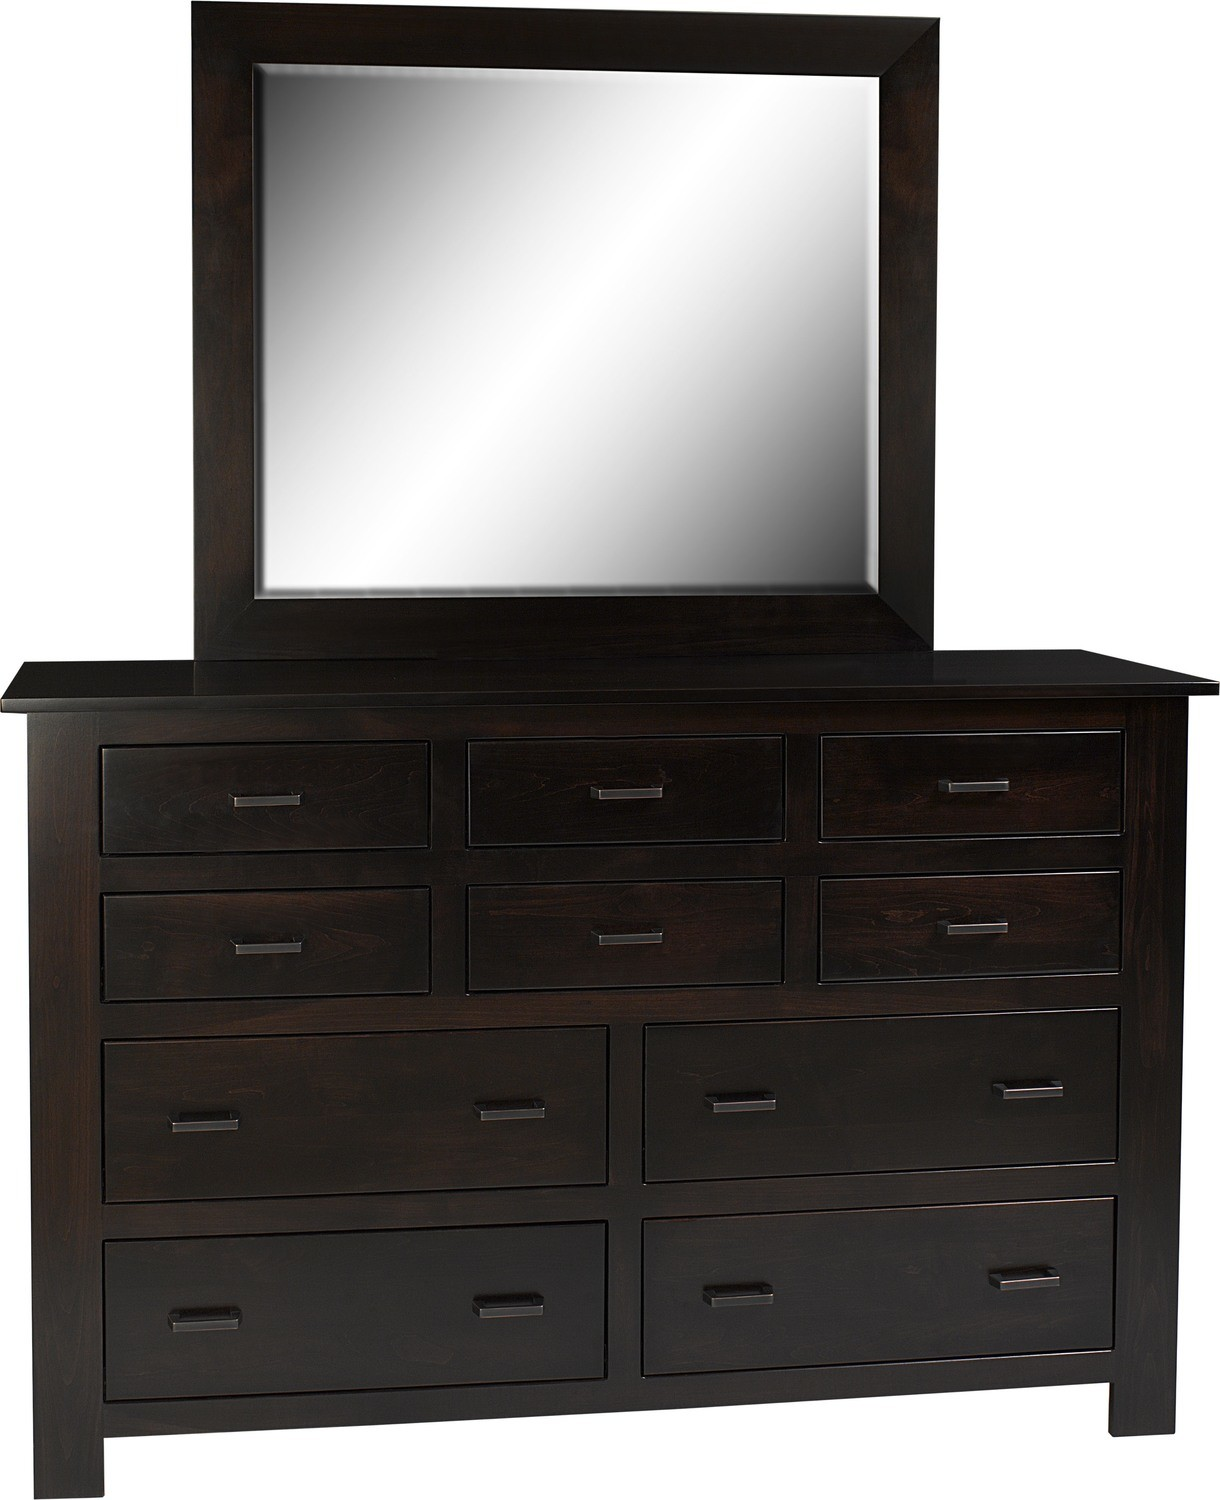 Horizon Shaker Dresser Farmside Wood 108